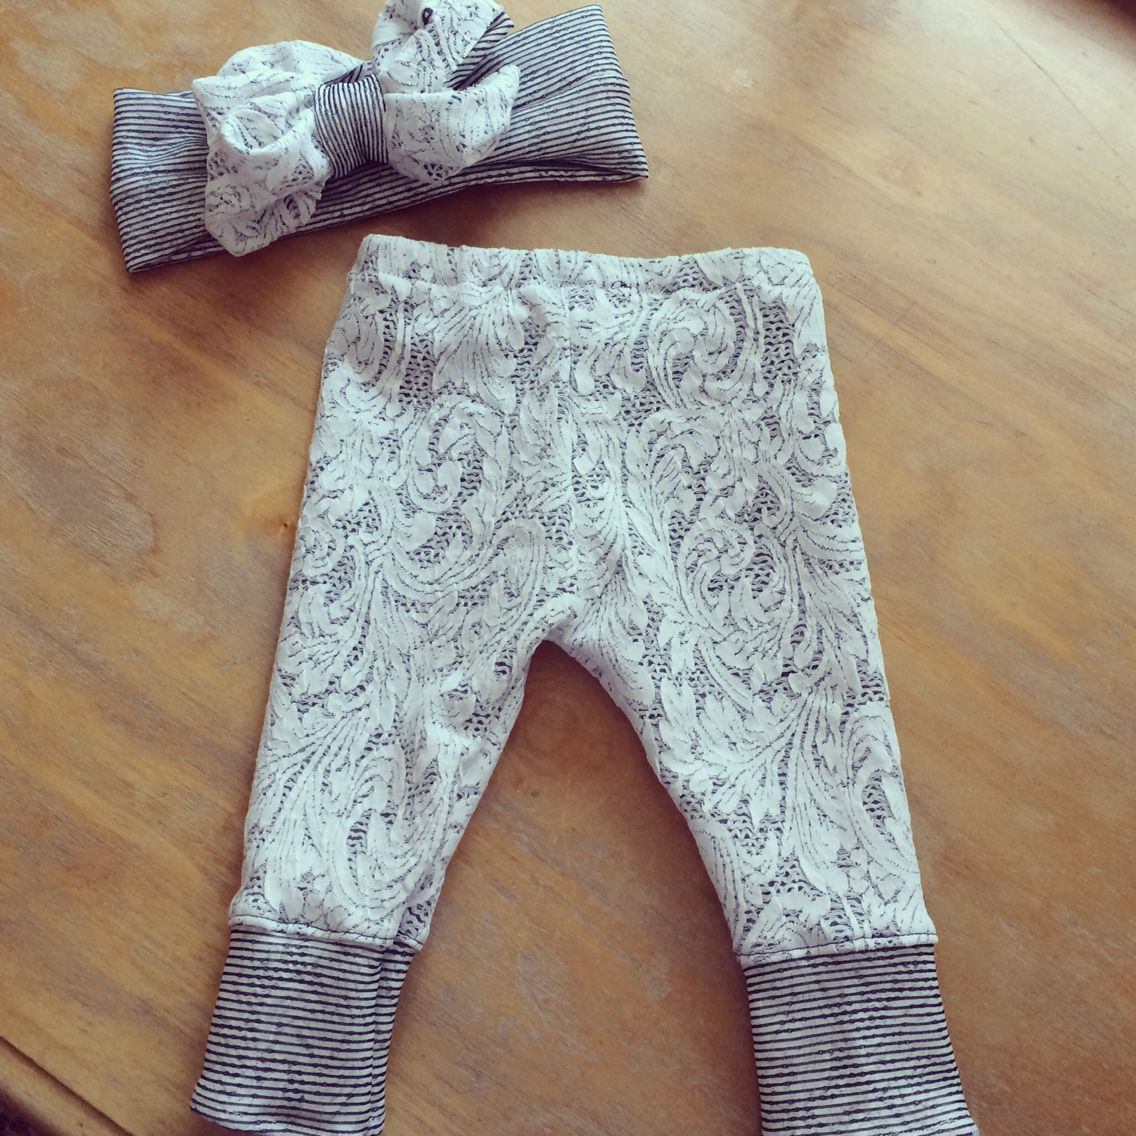 Knit leggings and a messy bow! Love the lace look!